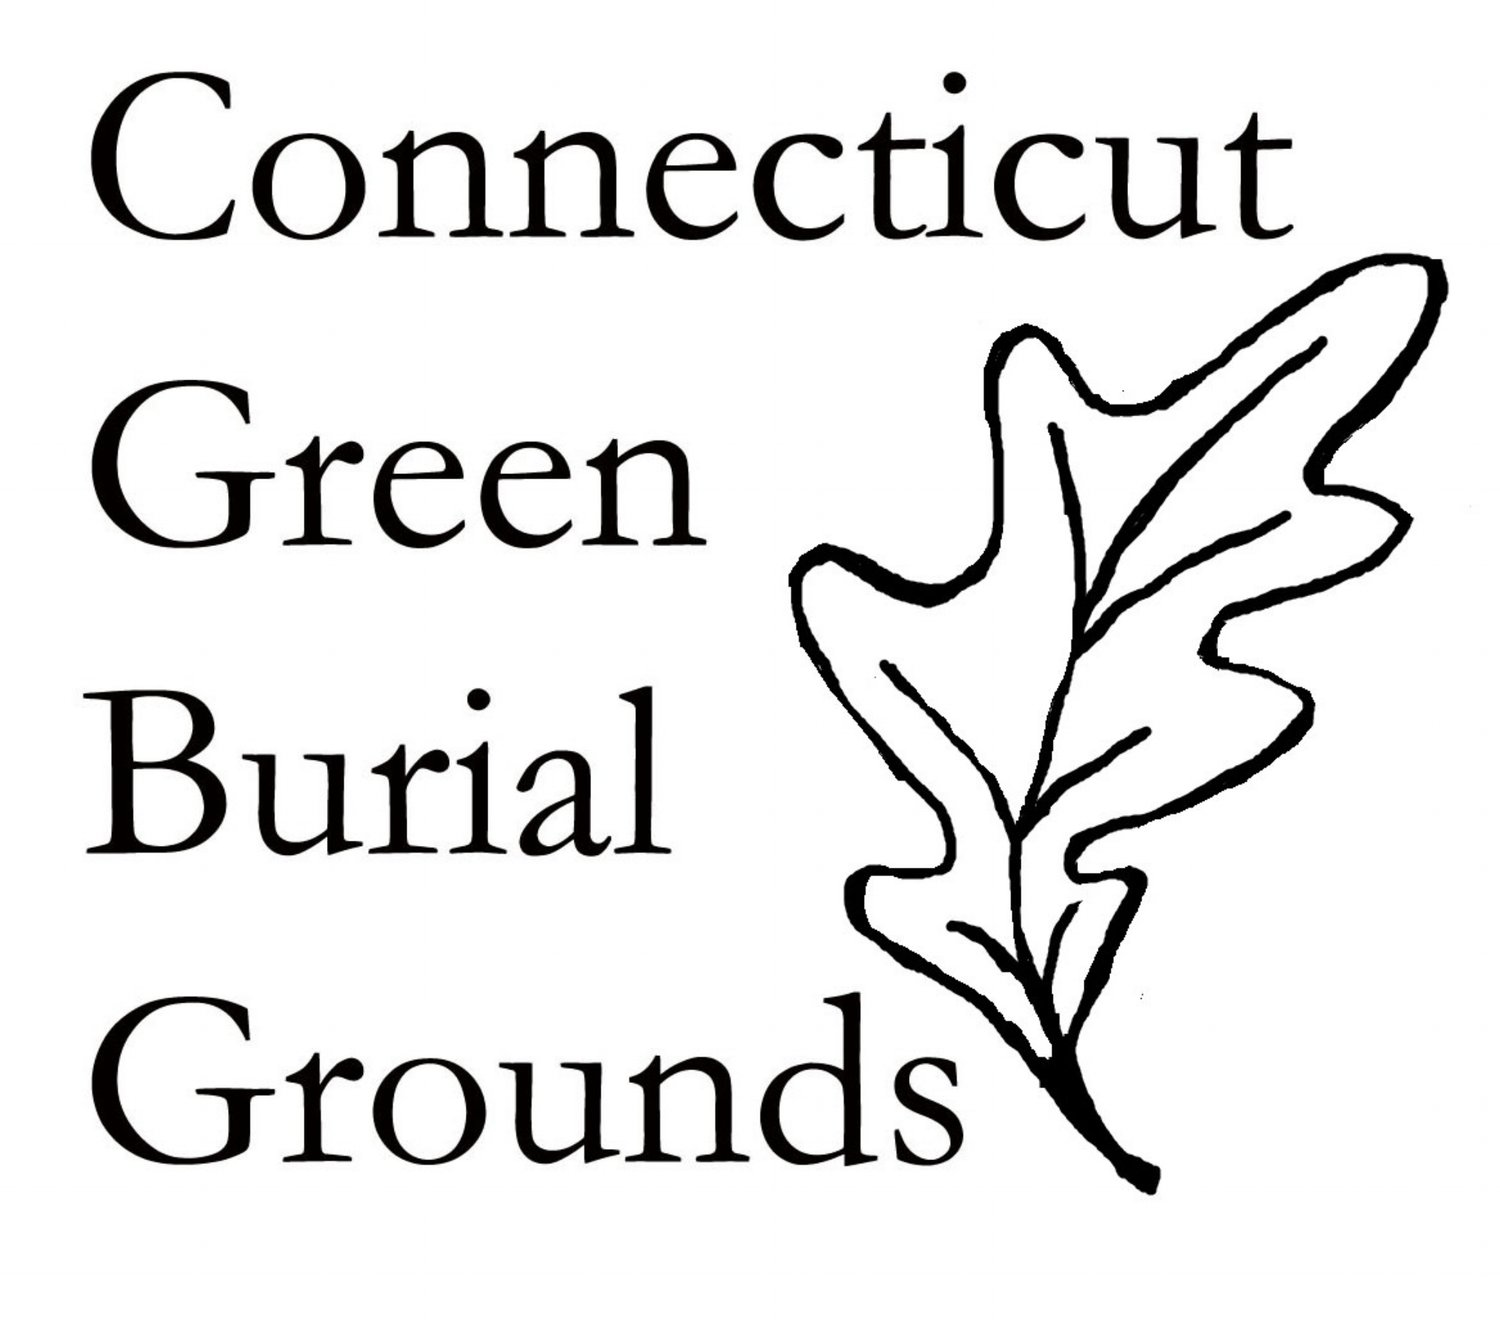 Connecticut Green Burial Grounds